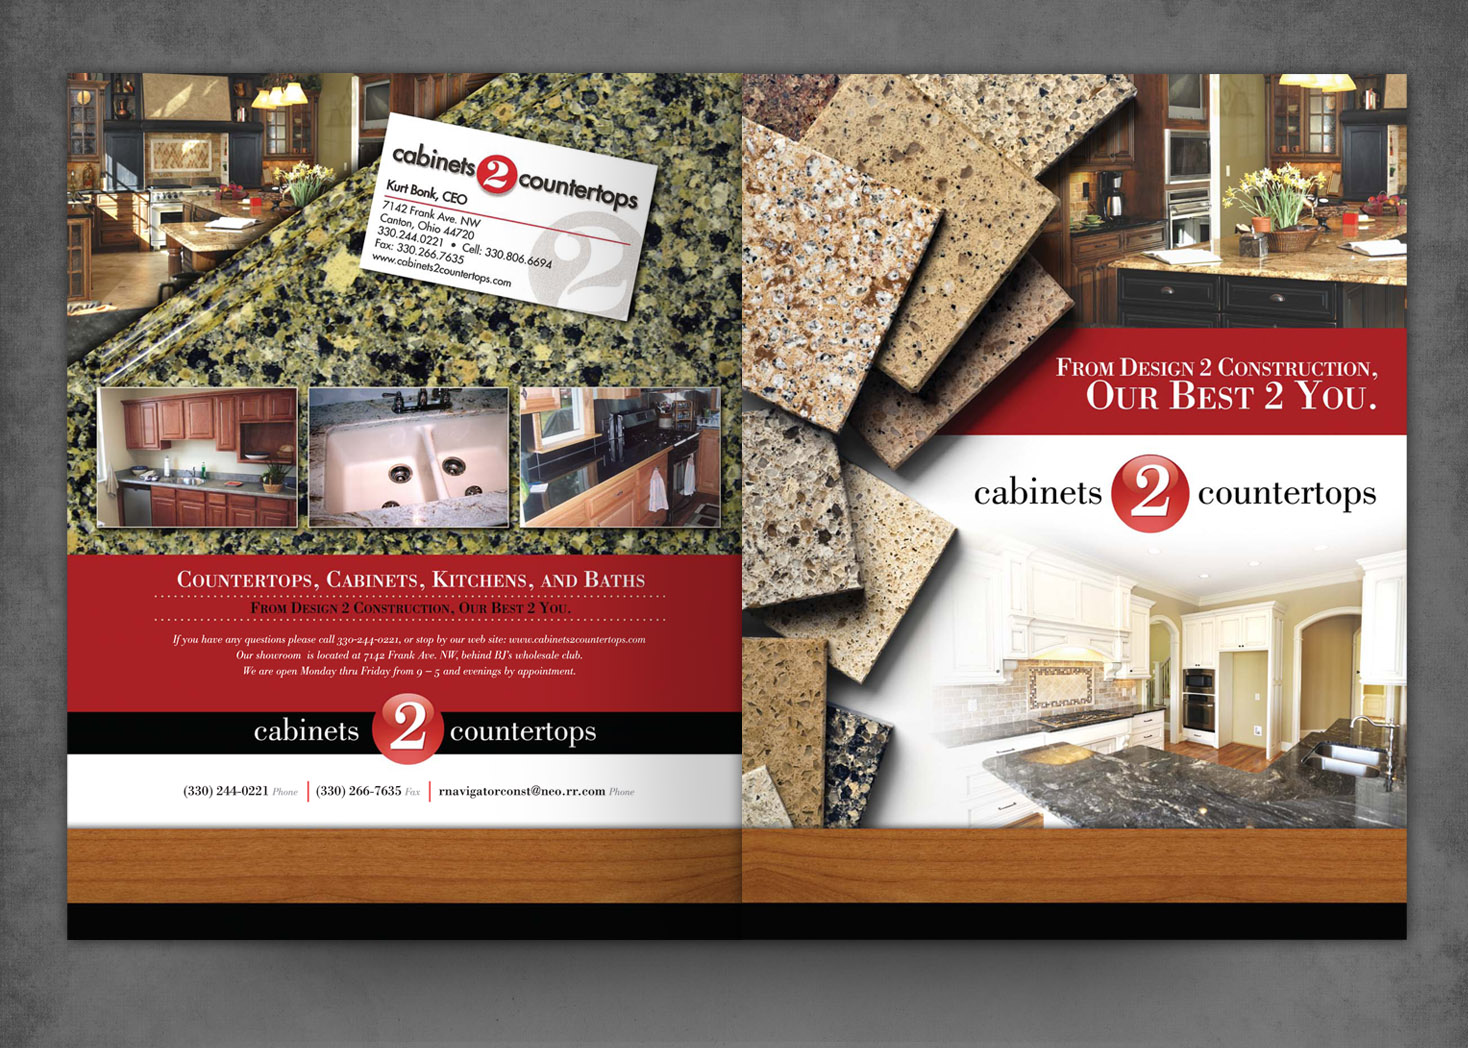 Cabinets 2 Countertops - Brochure Design - Lehman Design